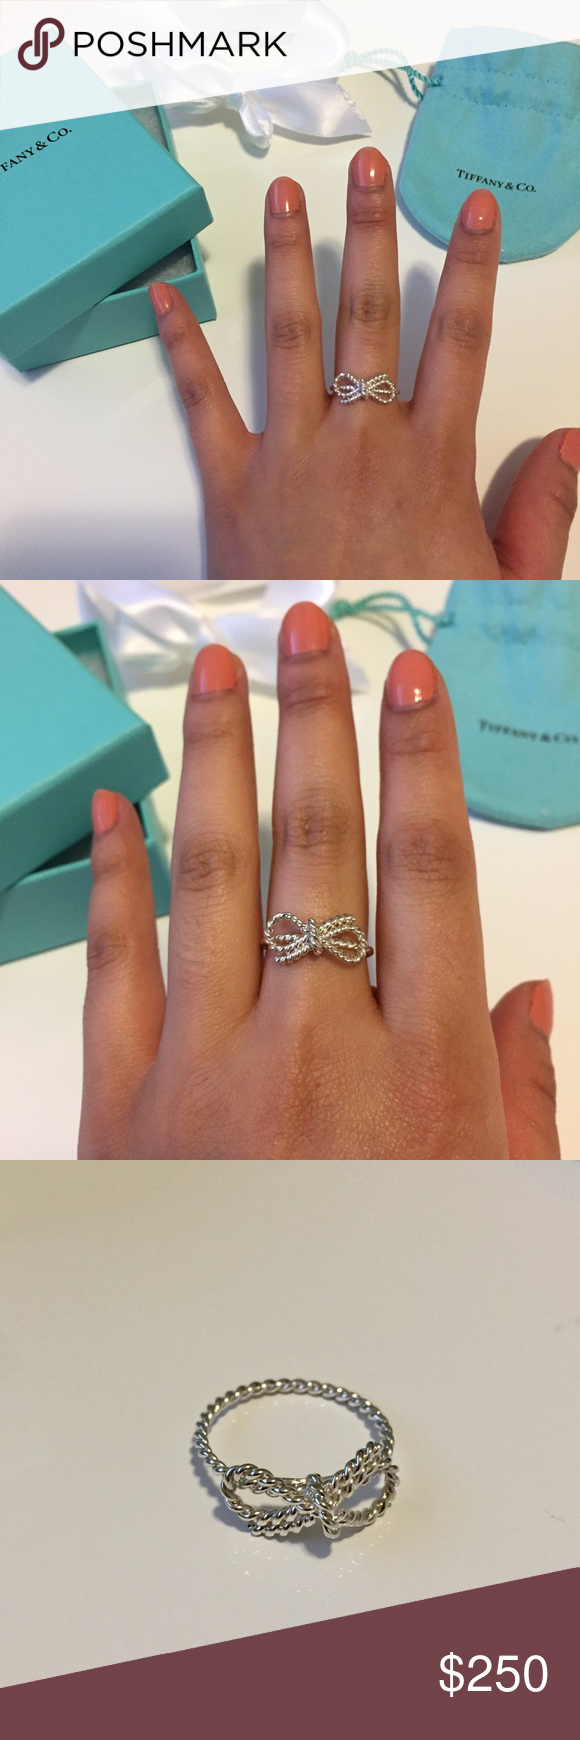 5ea9dc27b Twist Bow Ring NIB 100% Authentic Tiffany & Co. sterling silver twist bow  ring. So elegant and feminine! Brand new & perfect condition- never worn  other to ...